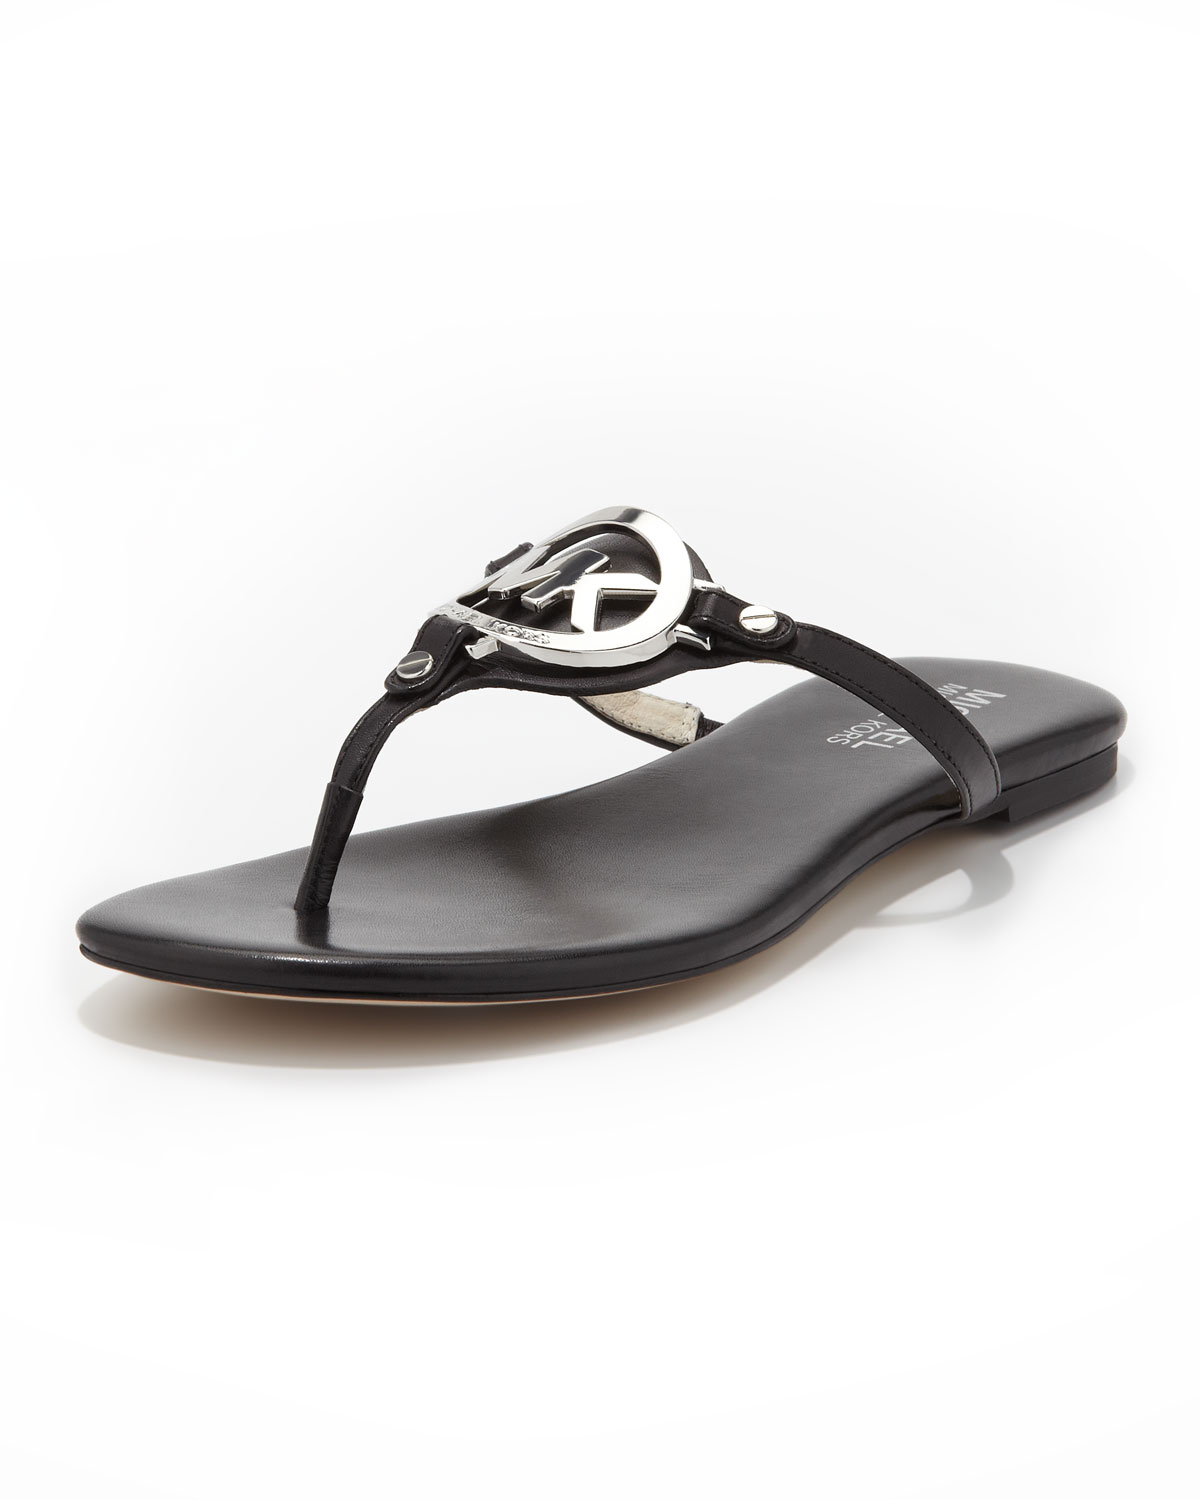 69ce1a4f5c6f Lyst - Michael Kors Michael Melodie Logo Thong Sandal in Black